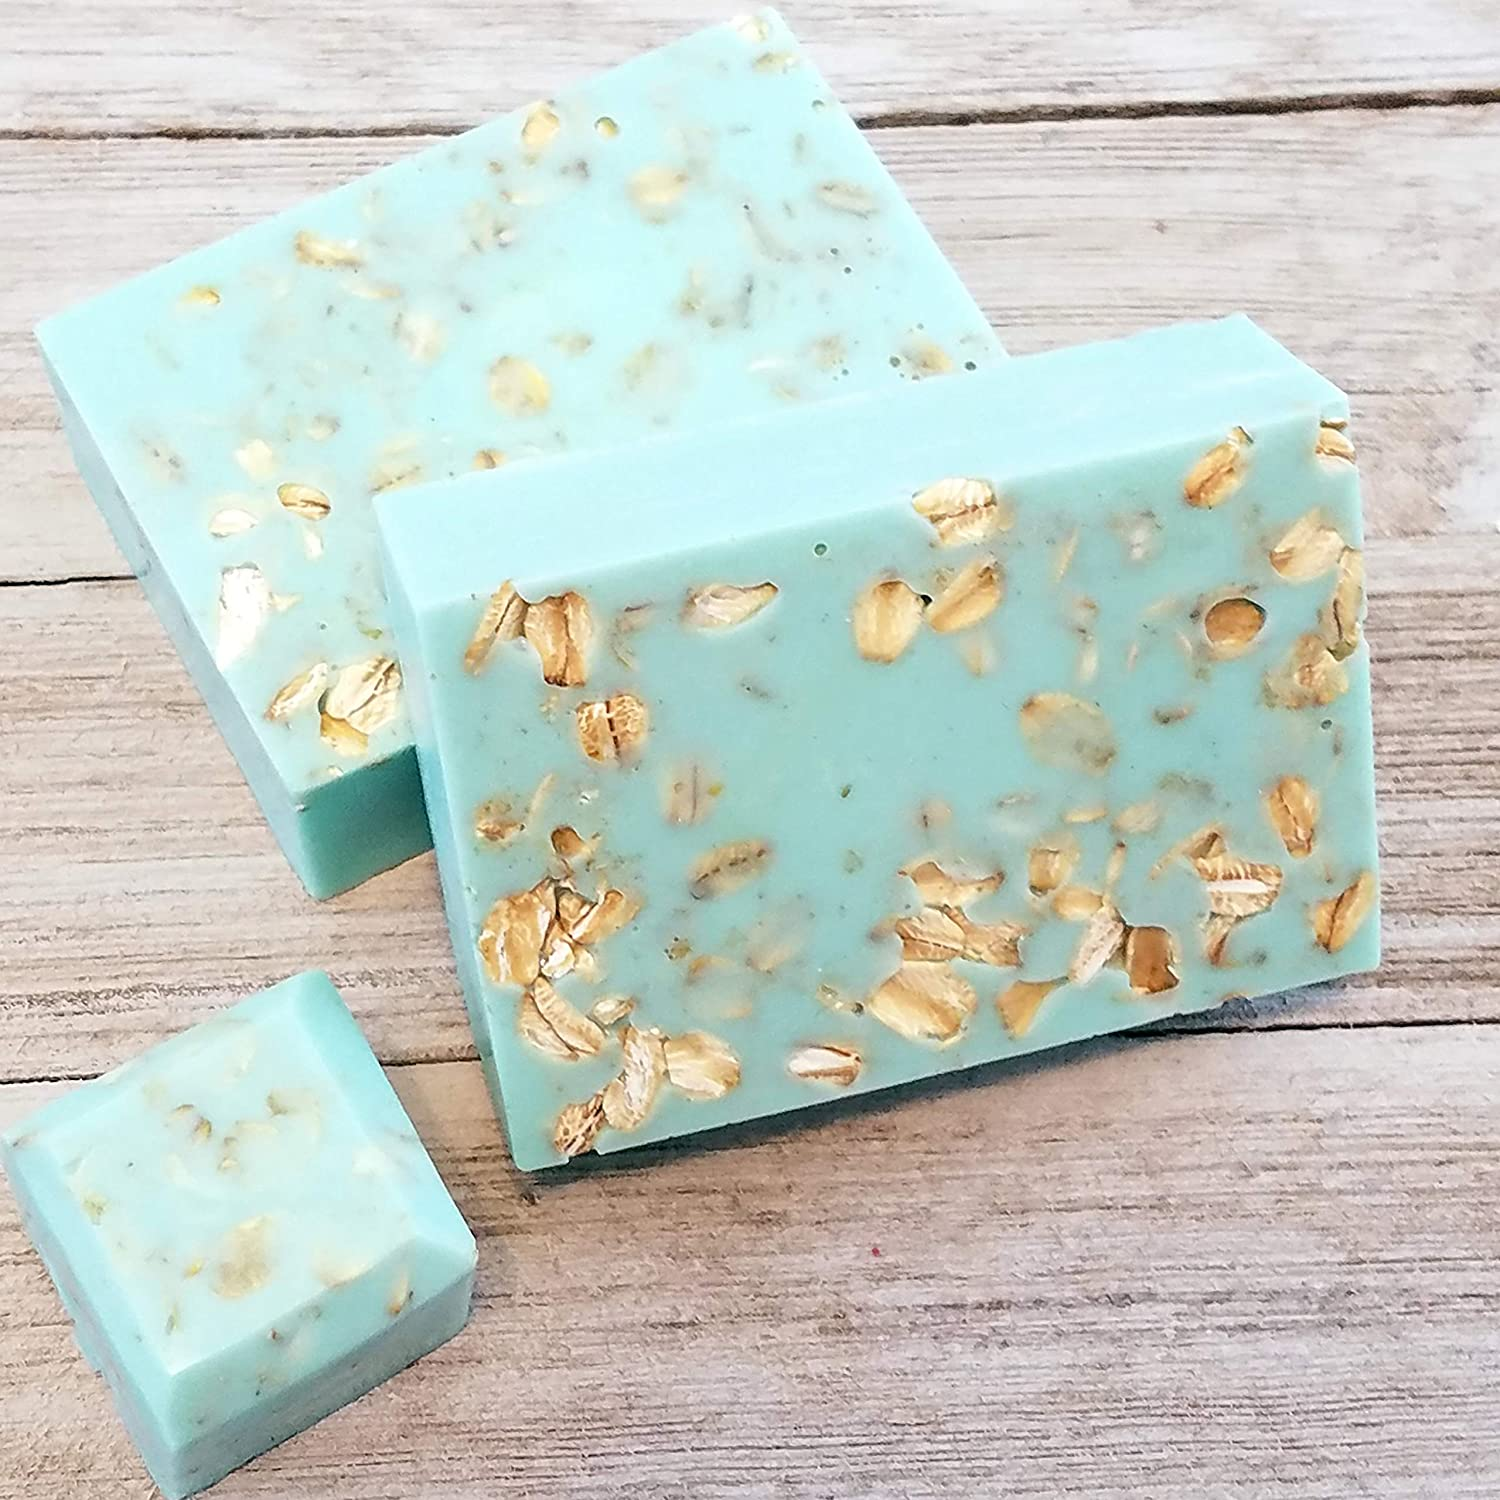 67% OFF of fixed price Handmade Direct stock discount Oatmeal Soap Silver Jewelry Hidden Charm San Surprise